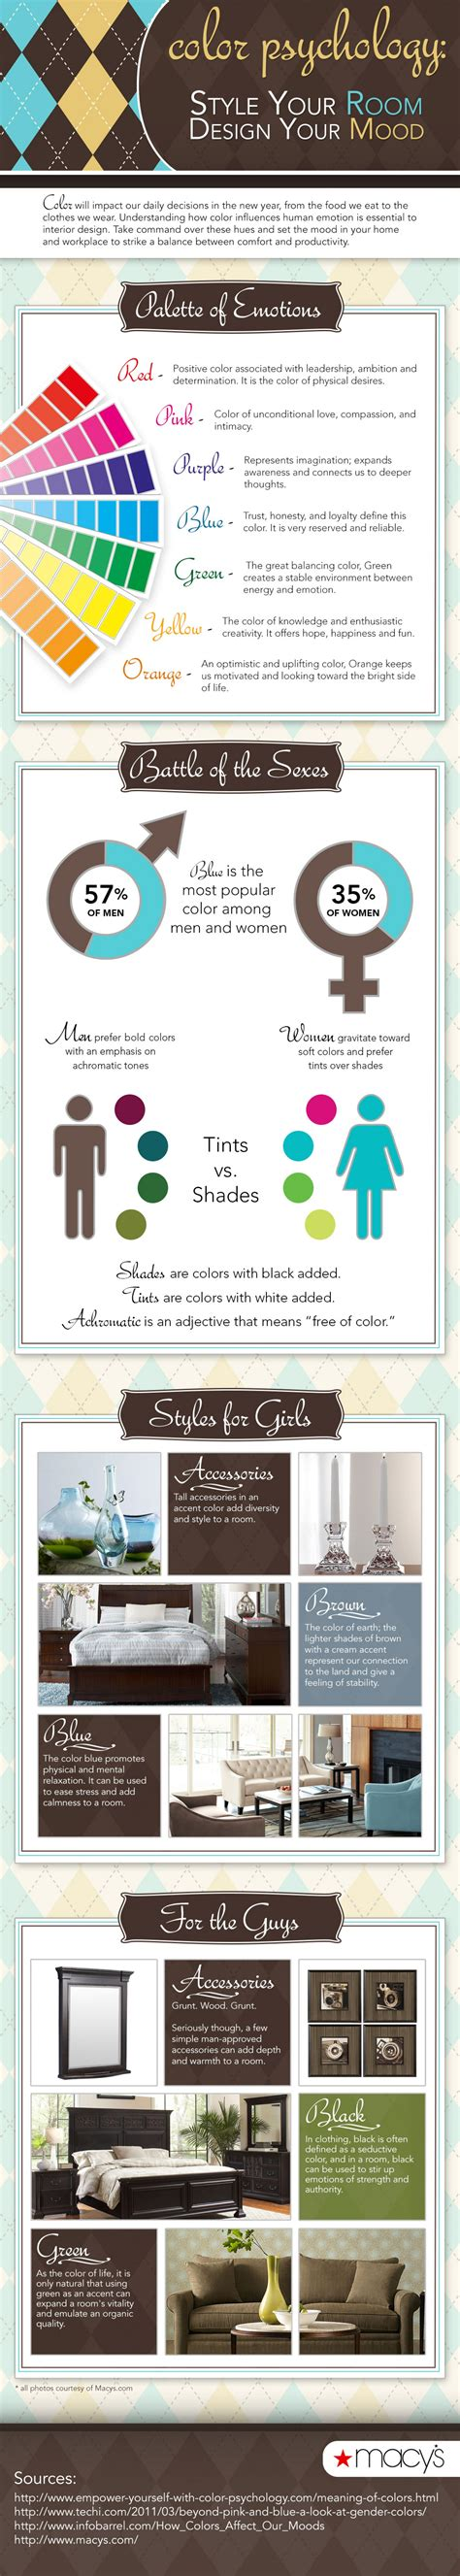 Color Psychology Style Your Room, Design Your Mood